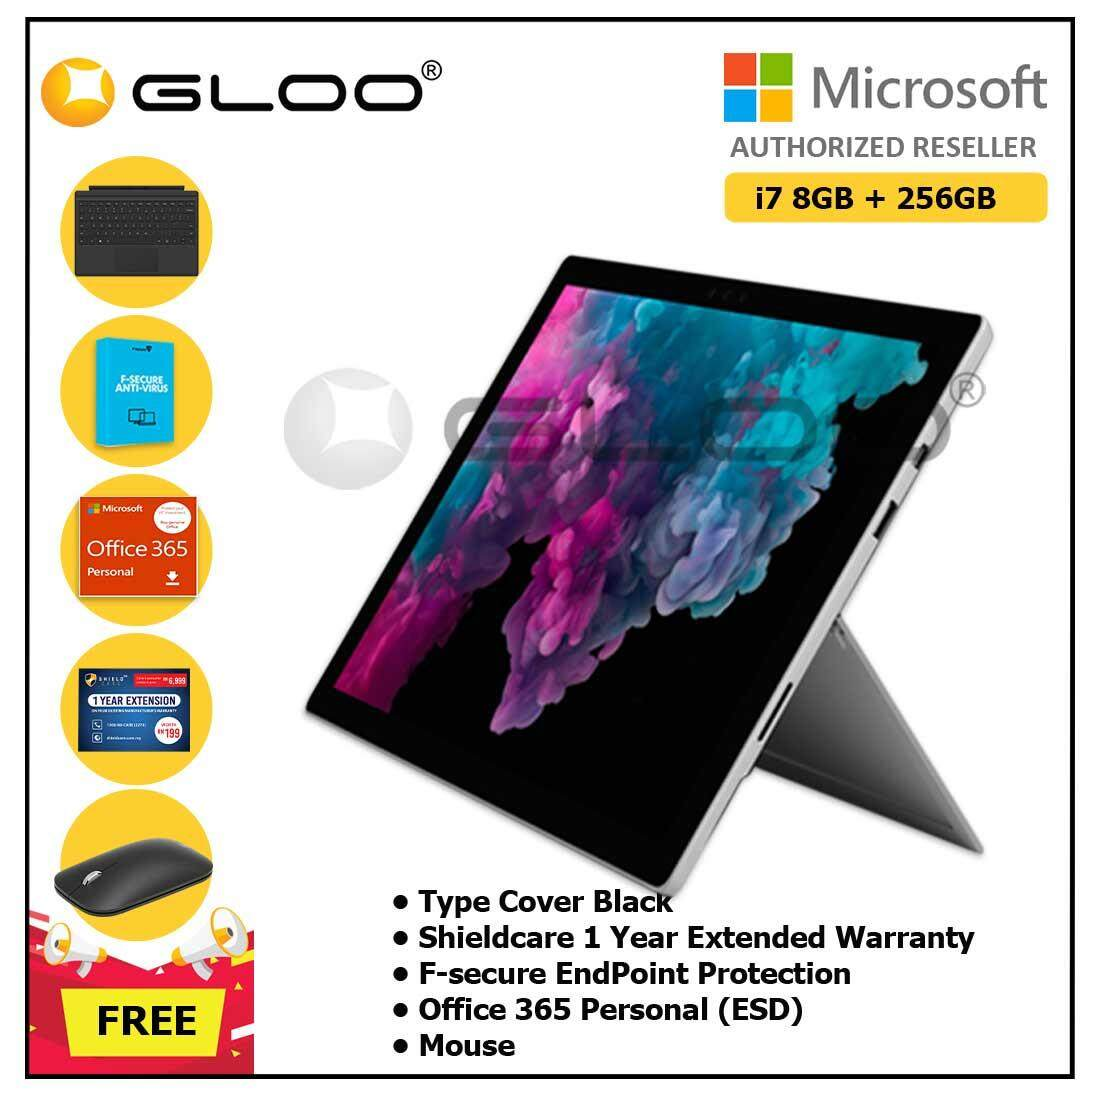 Microsoft Surface Pro 6 Core i7/8GB RAM - 256GB + Type Cover Black + Office 365 Personal (ESD) + Shield Care 1 Year Extended Warranty + F-Secure End Point Protection + Mouse